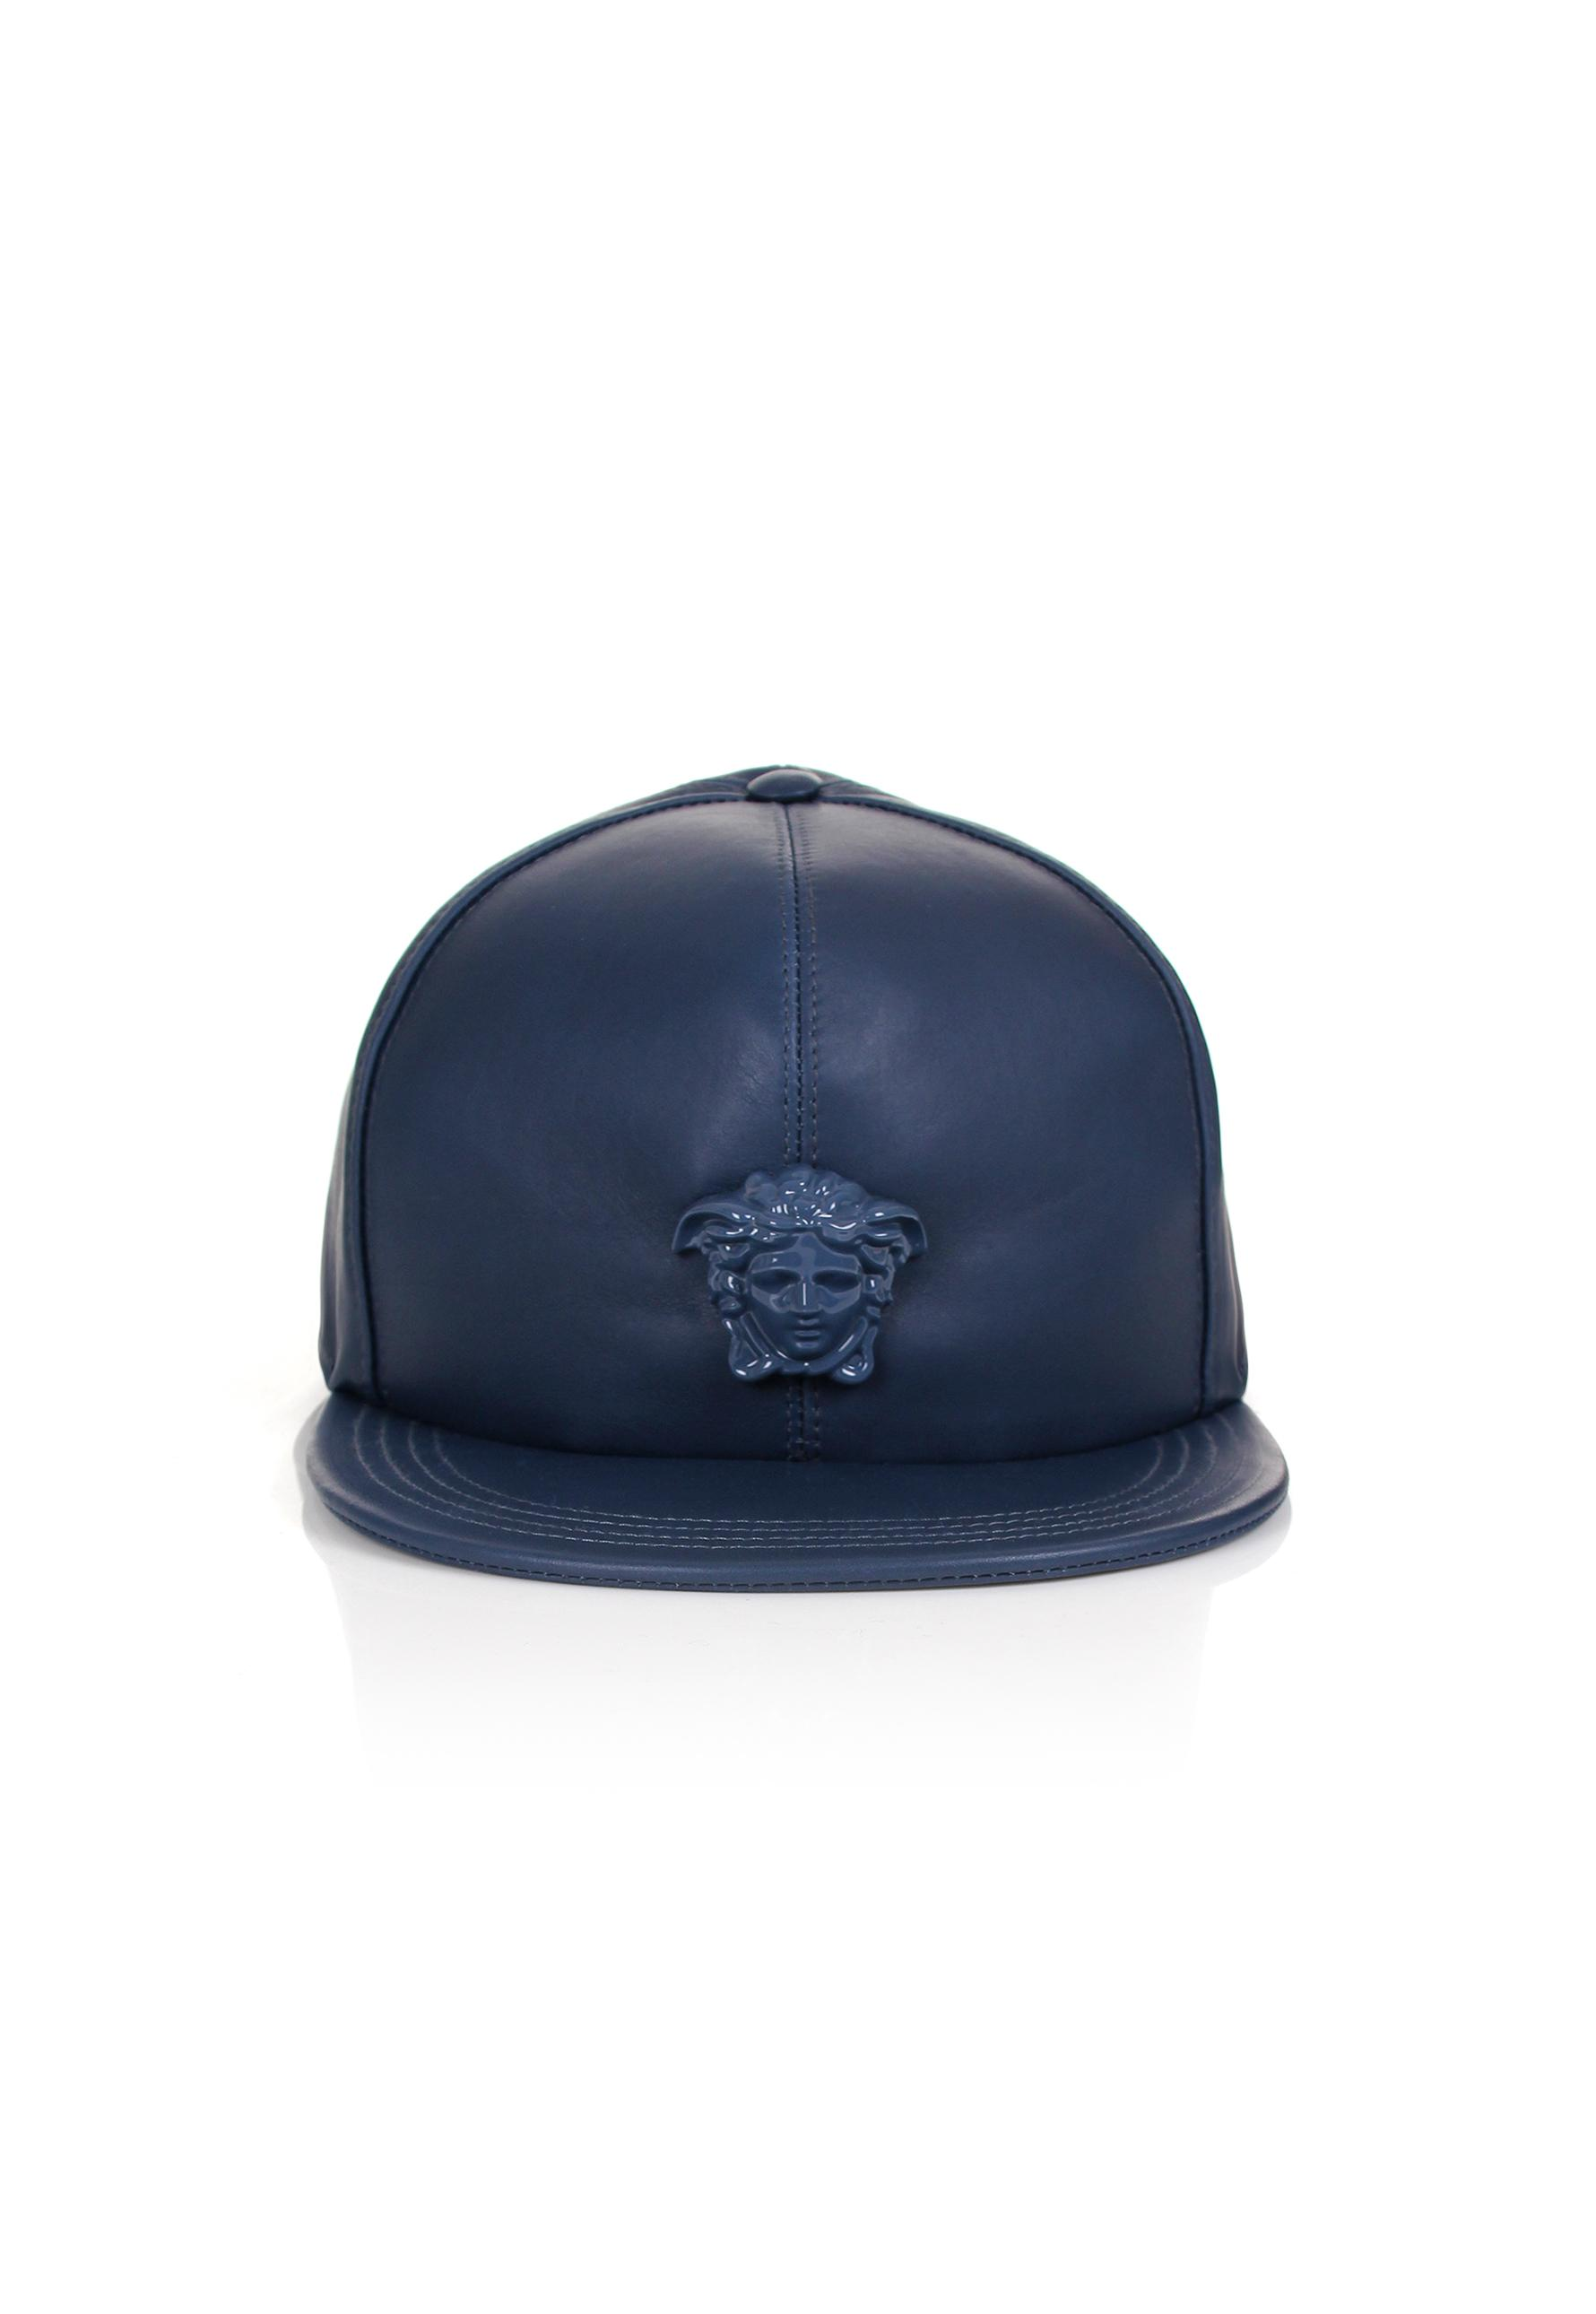 f4b07e685d7 Lyst - Versace Medusa Logo Leather Show Cap Navy navy in Blue for Men